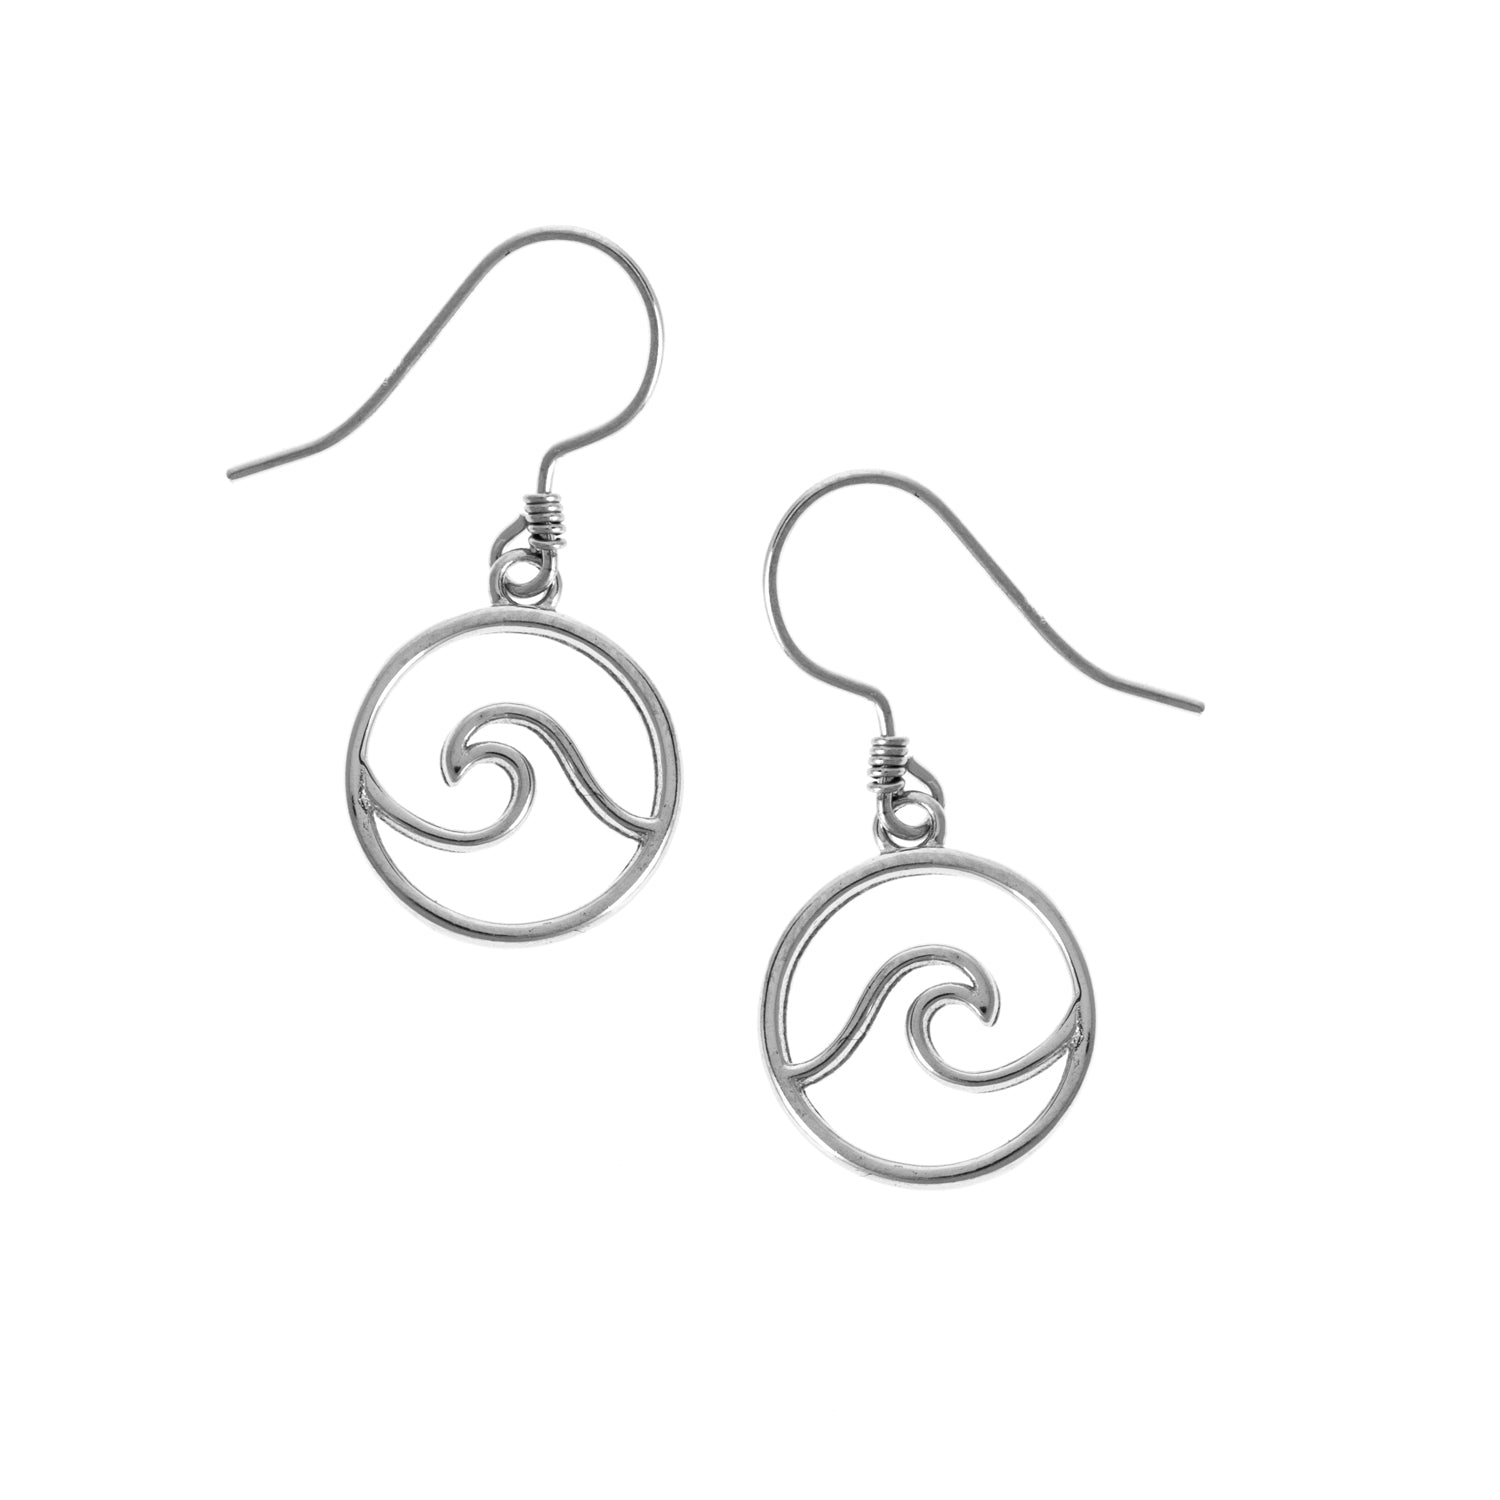 cape cod wave drop earrings made of 925 sterling silver for Michael's custom jewelers on Cape Cod